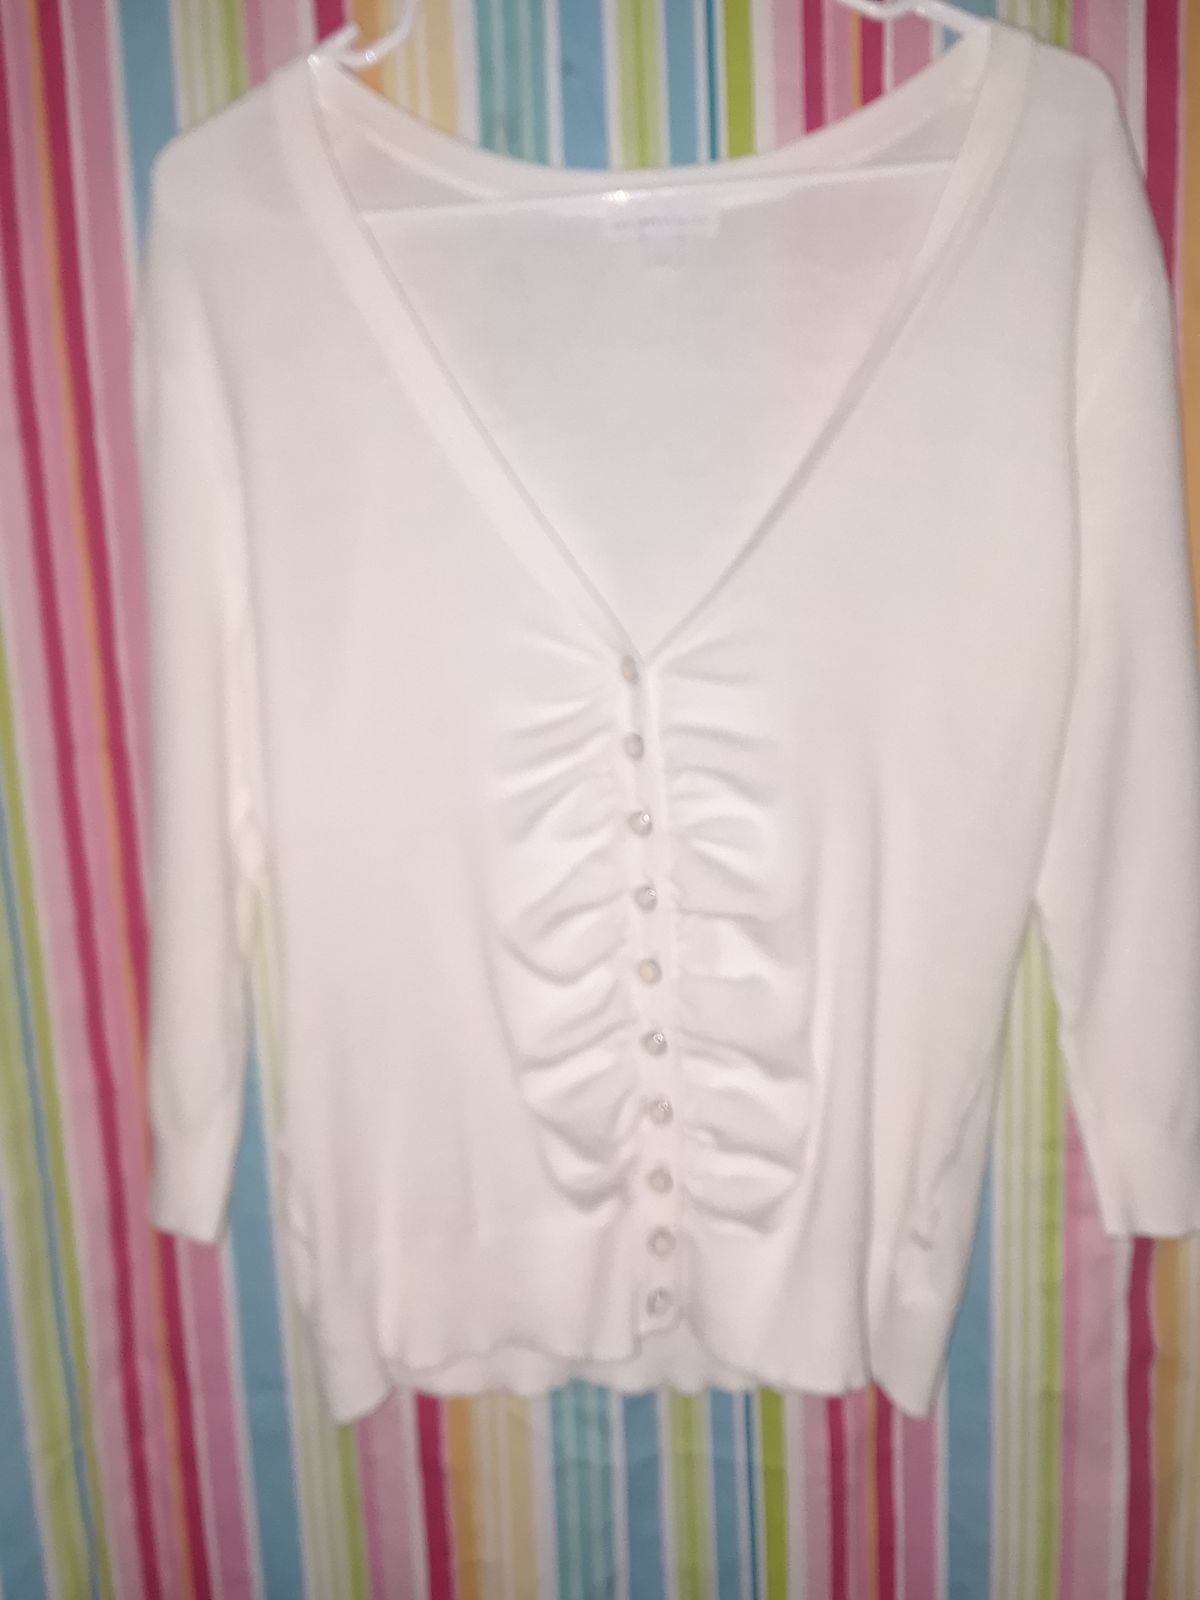 Womens white button up sweater - Mercari: BUY & SELL THINGS YOU LOVE